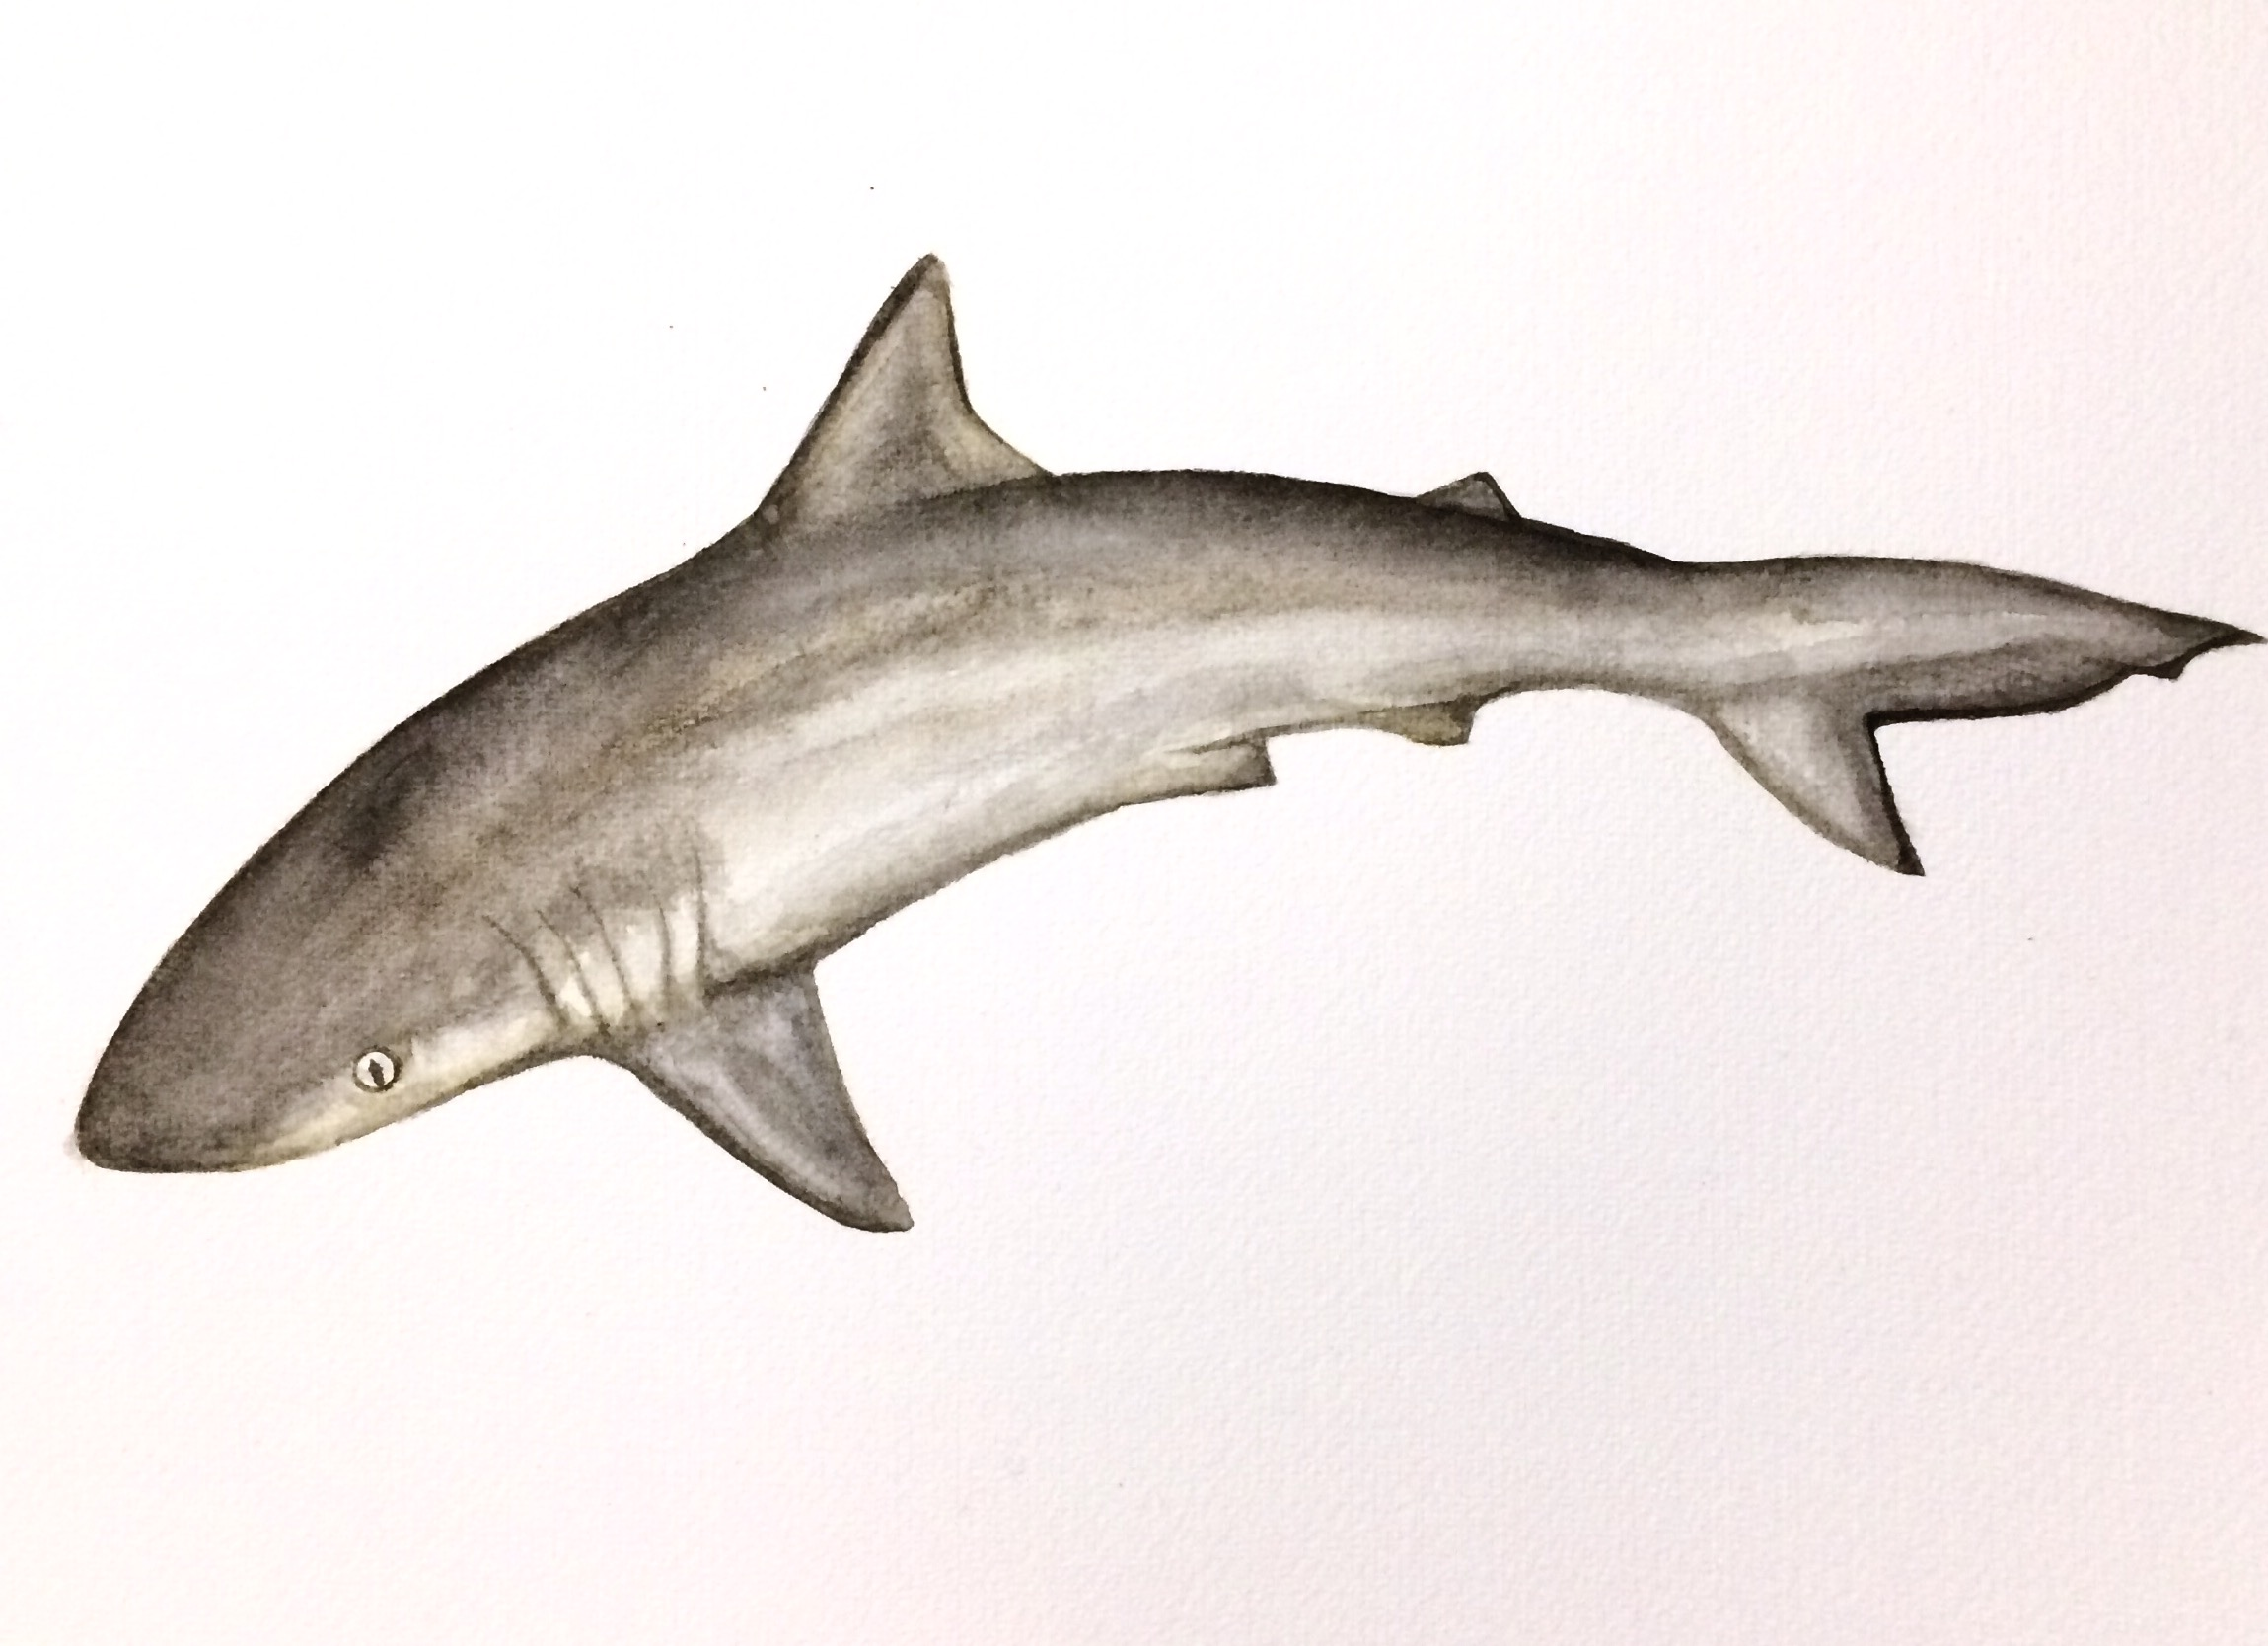 31/365 Atlantic Sharpnose Shark